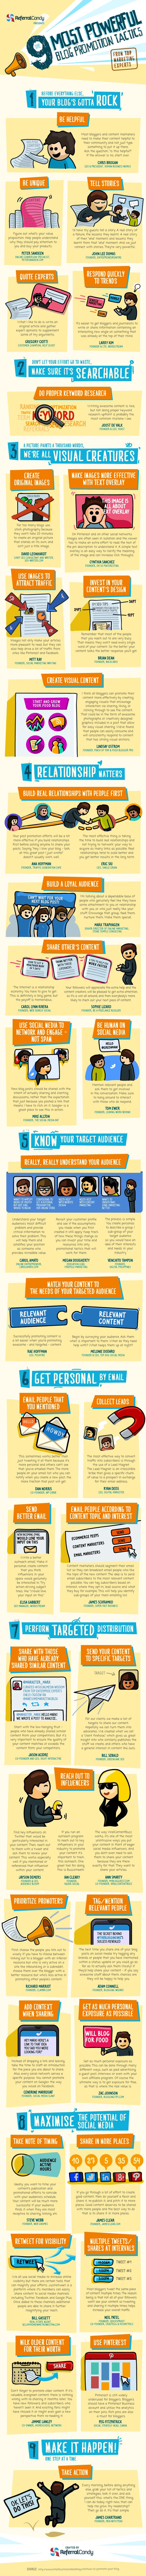 The 9 Most Powerful Blog Promotion Tactics From Top Marketing Experts [Infographic]